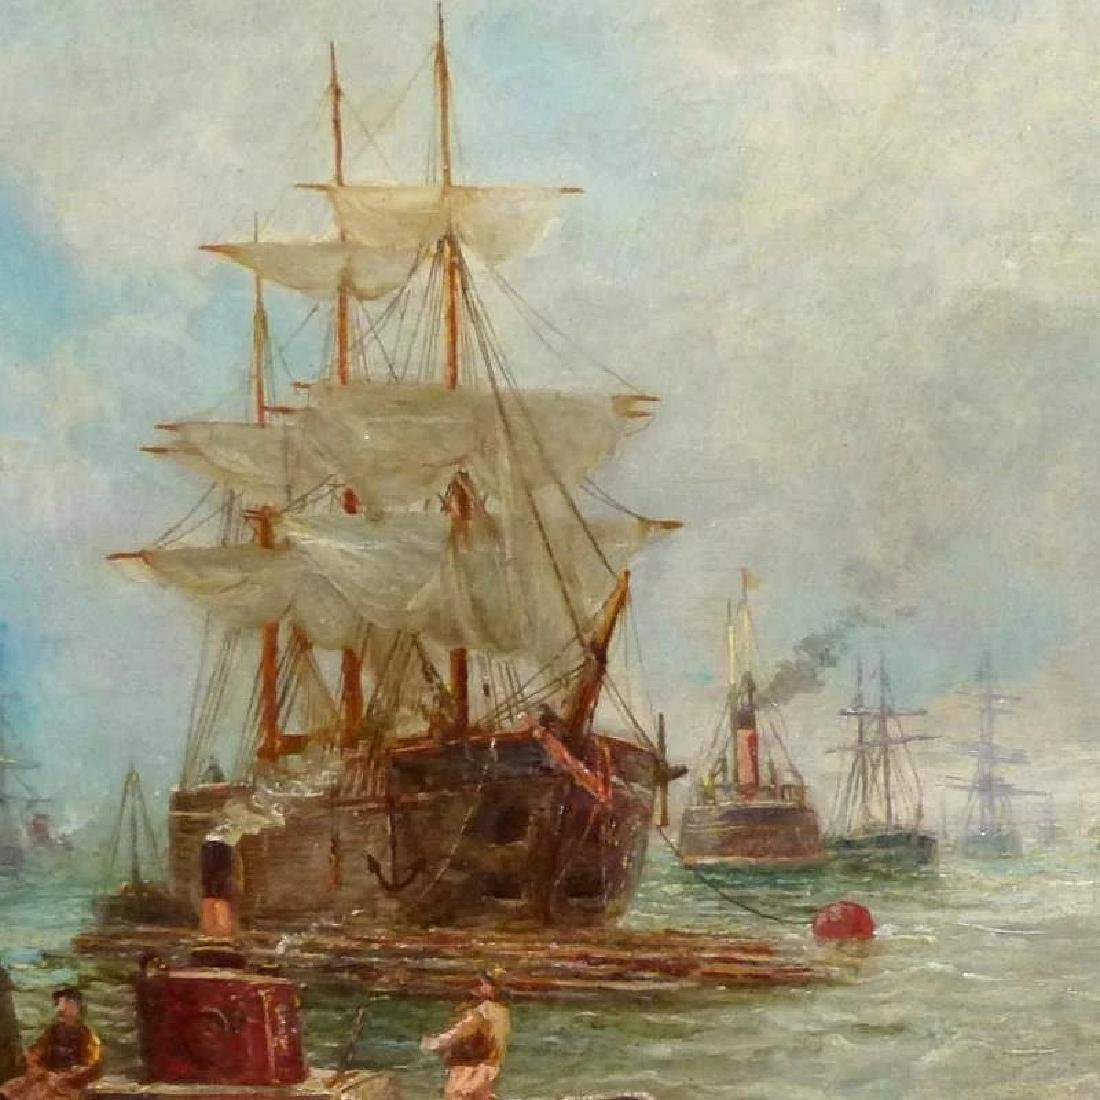 Antique Shipping Scene on the Tyne River, by Bernard B. - 2